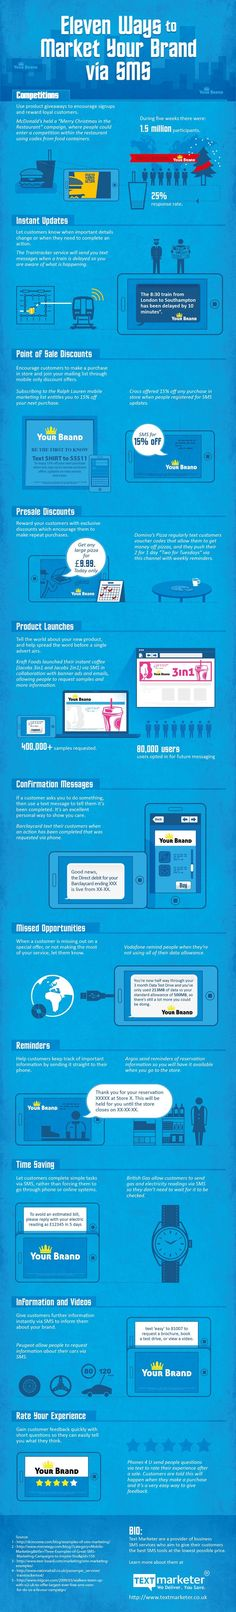 #Infographic: 11 Ways to Market Your Brand via SMS #MobileMarketing